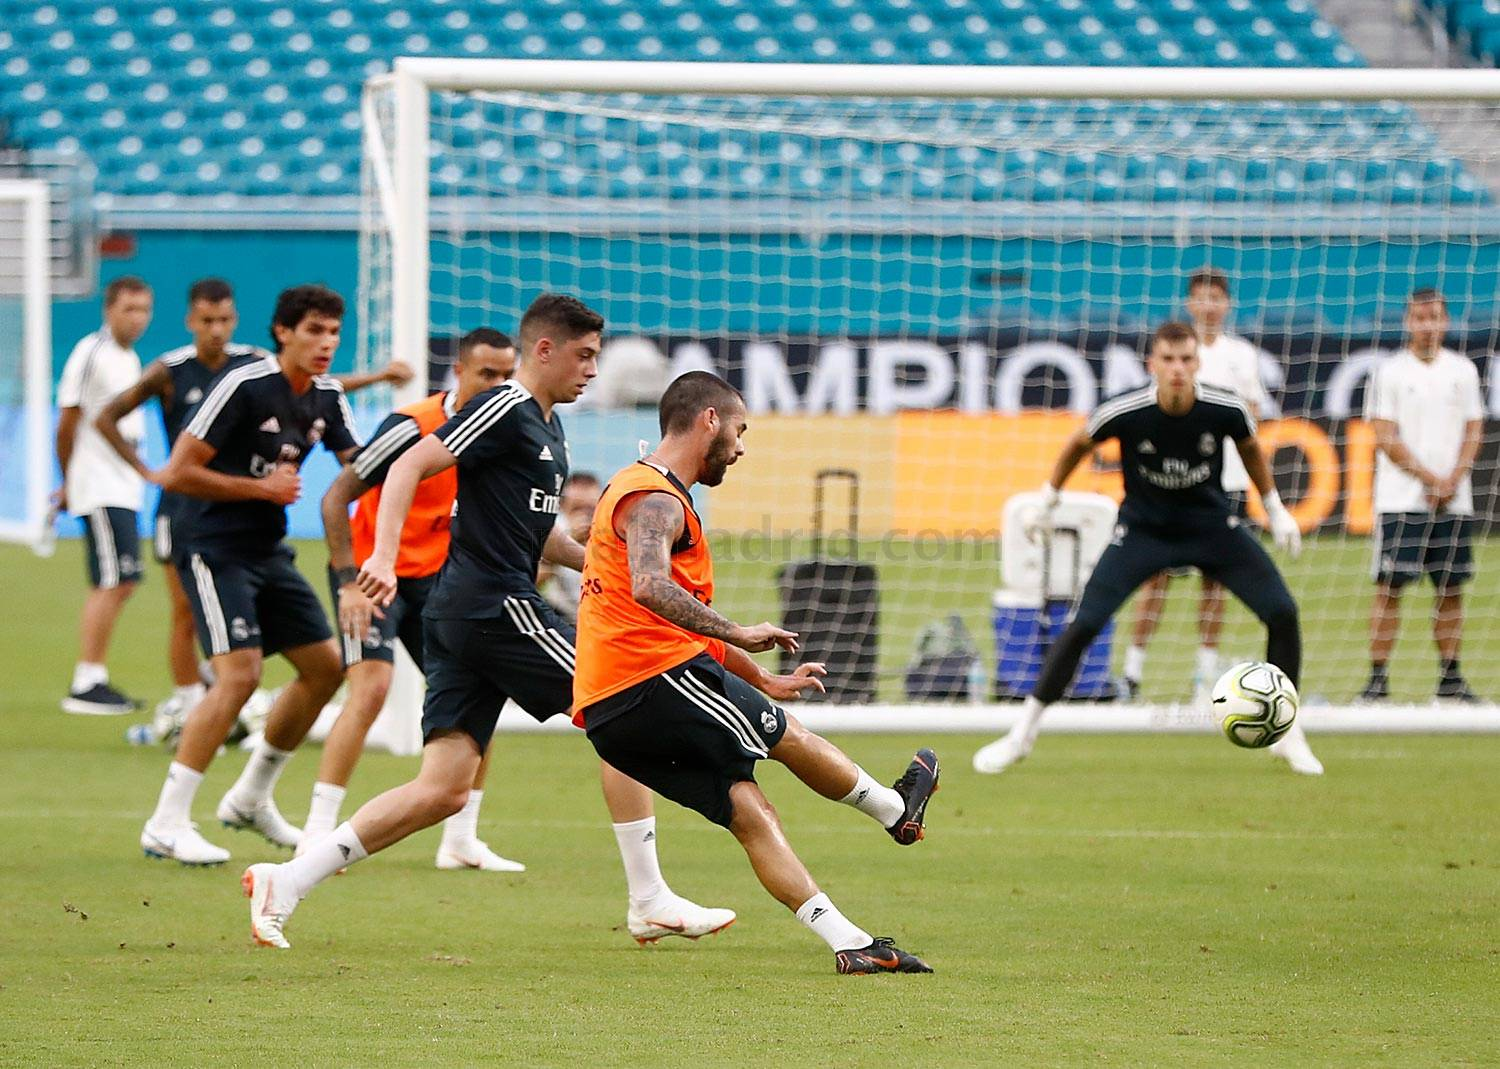 Real Madrid - Entrenamiento del Real Madrid en el Hard Rock Stadium - 31-07-2018